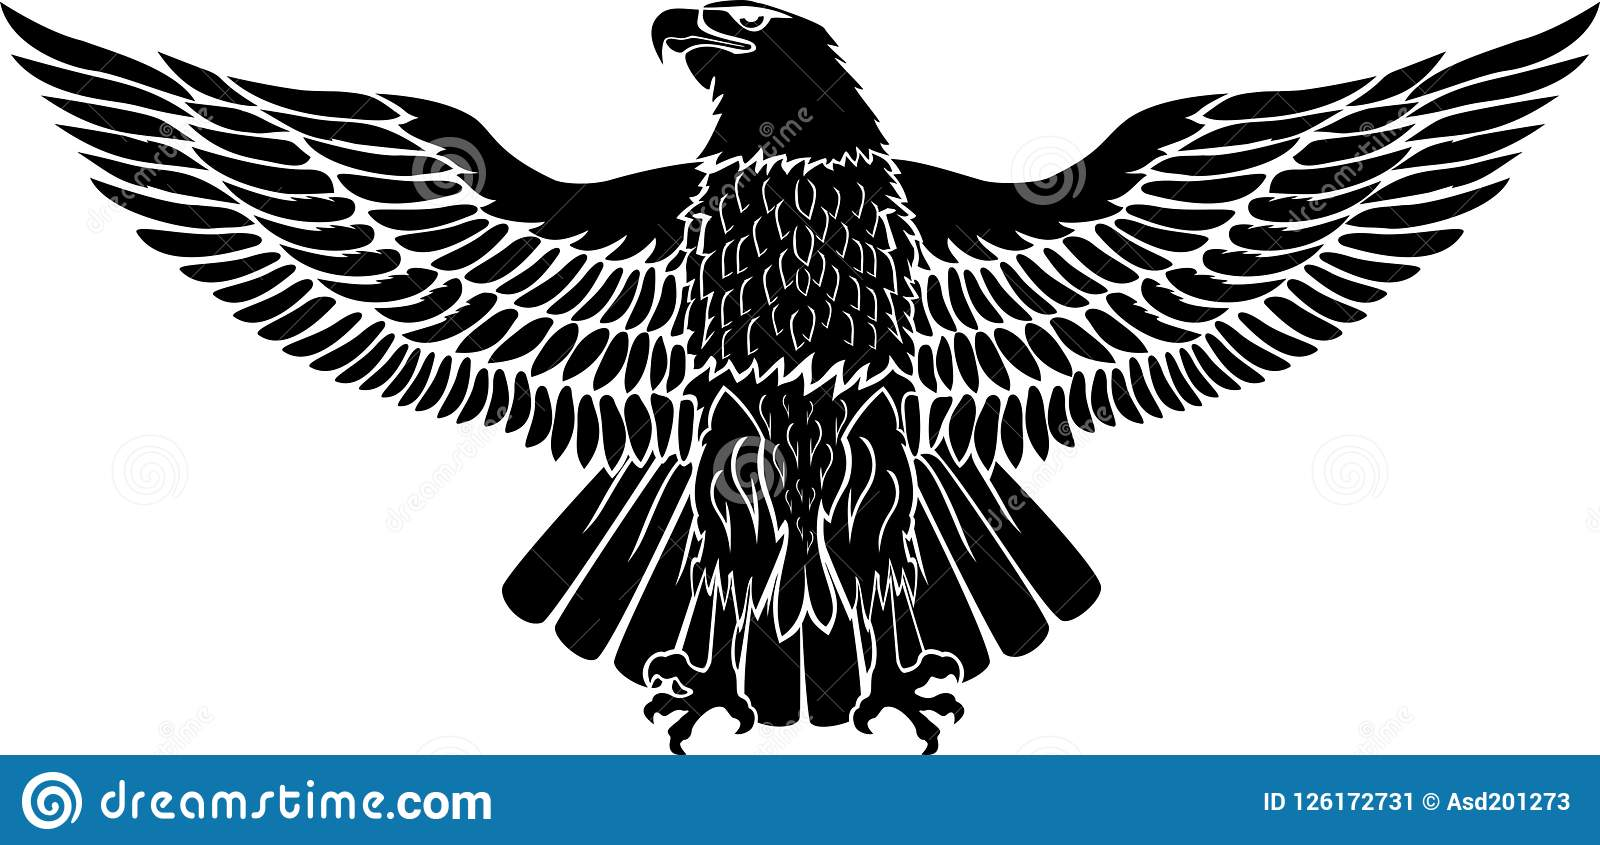 Eagle for use as a sticker or tattoo